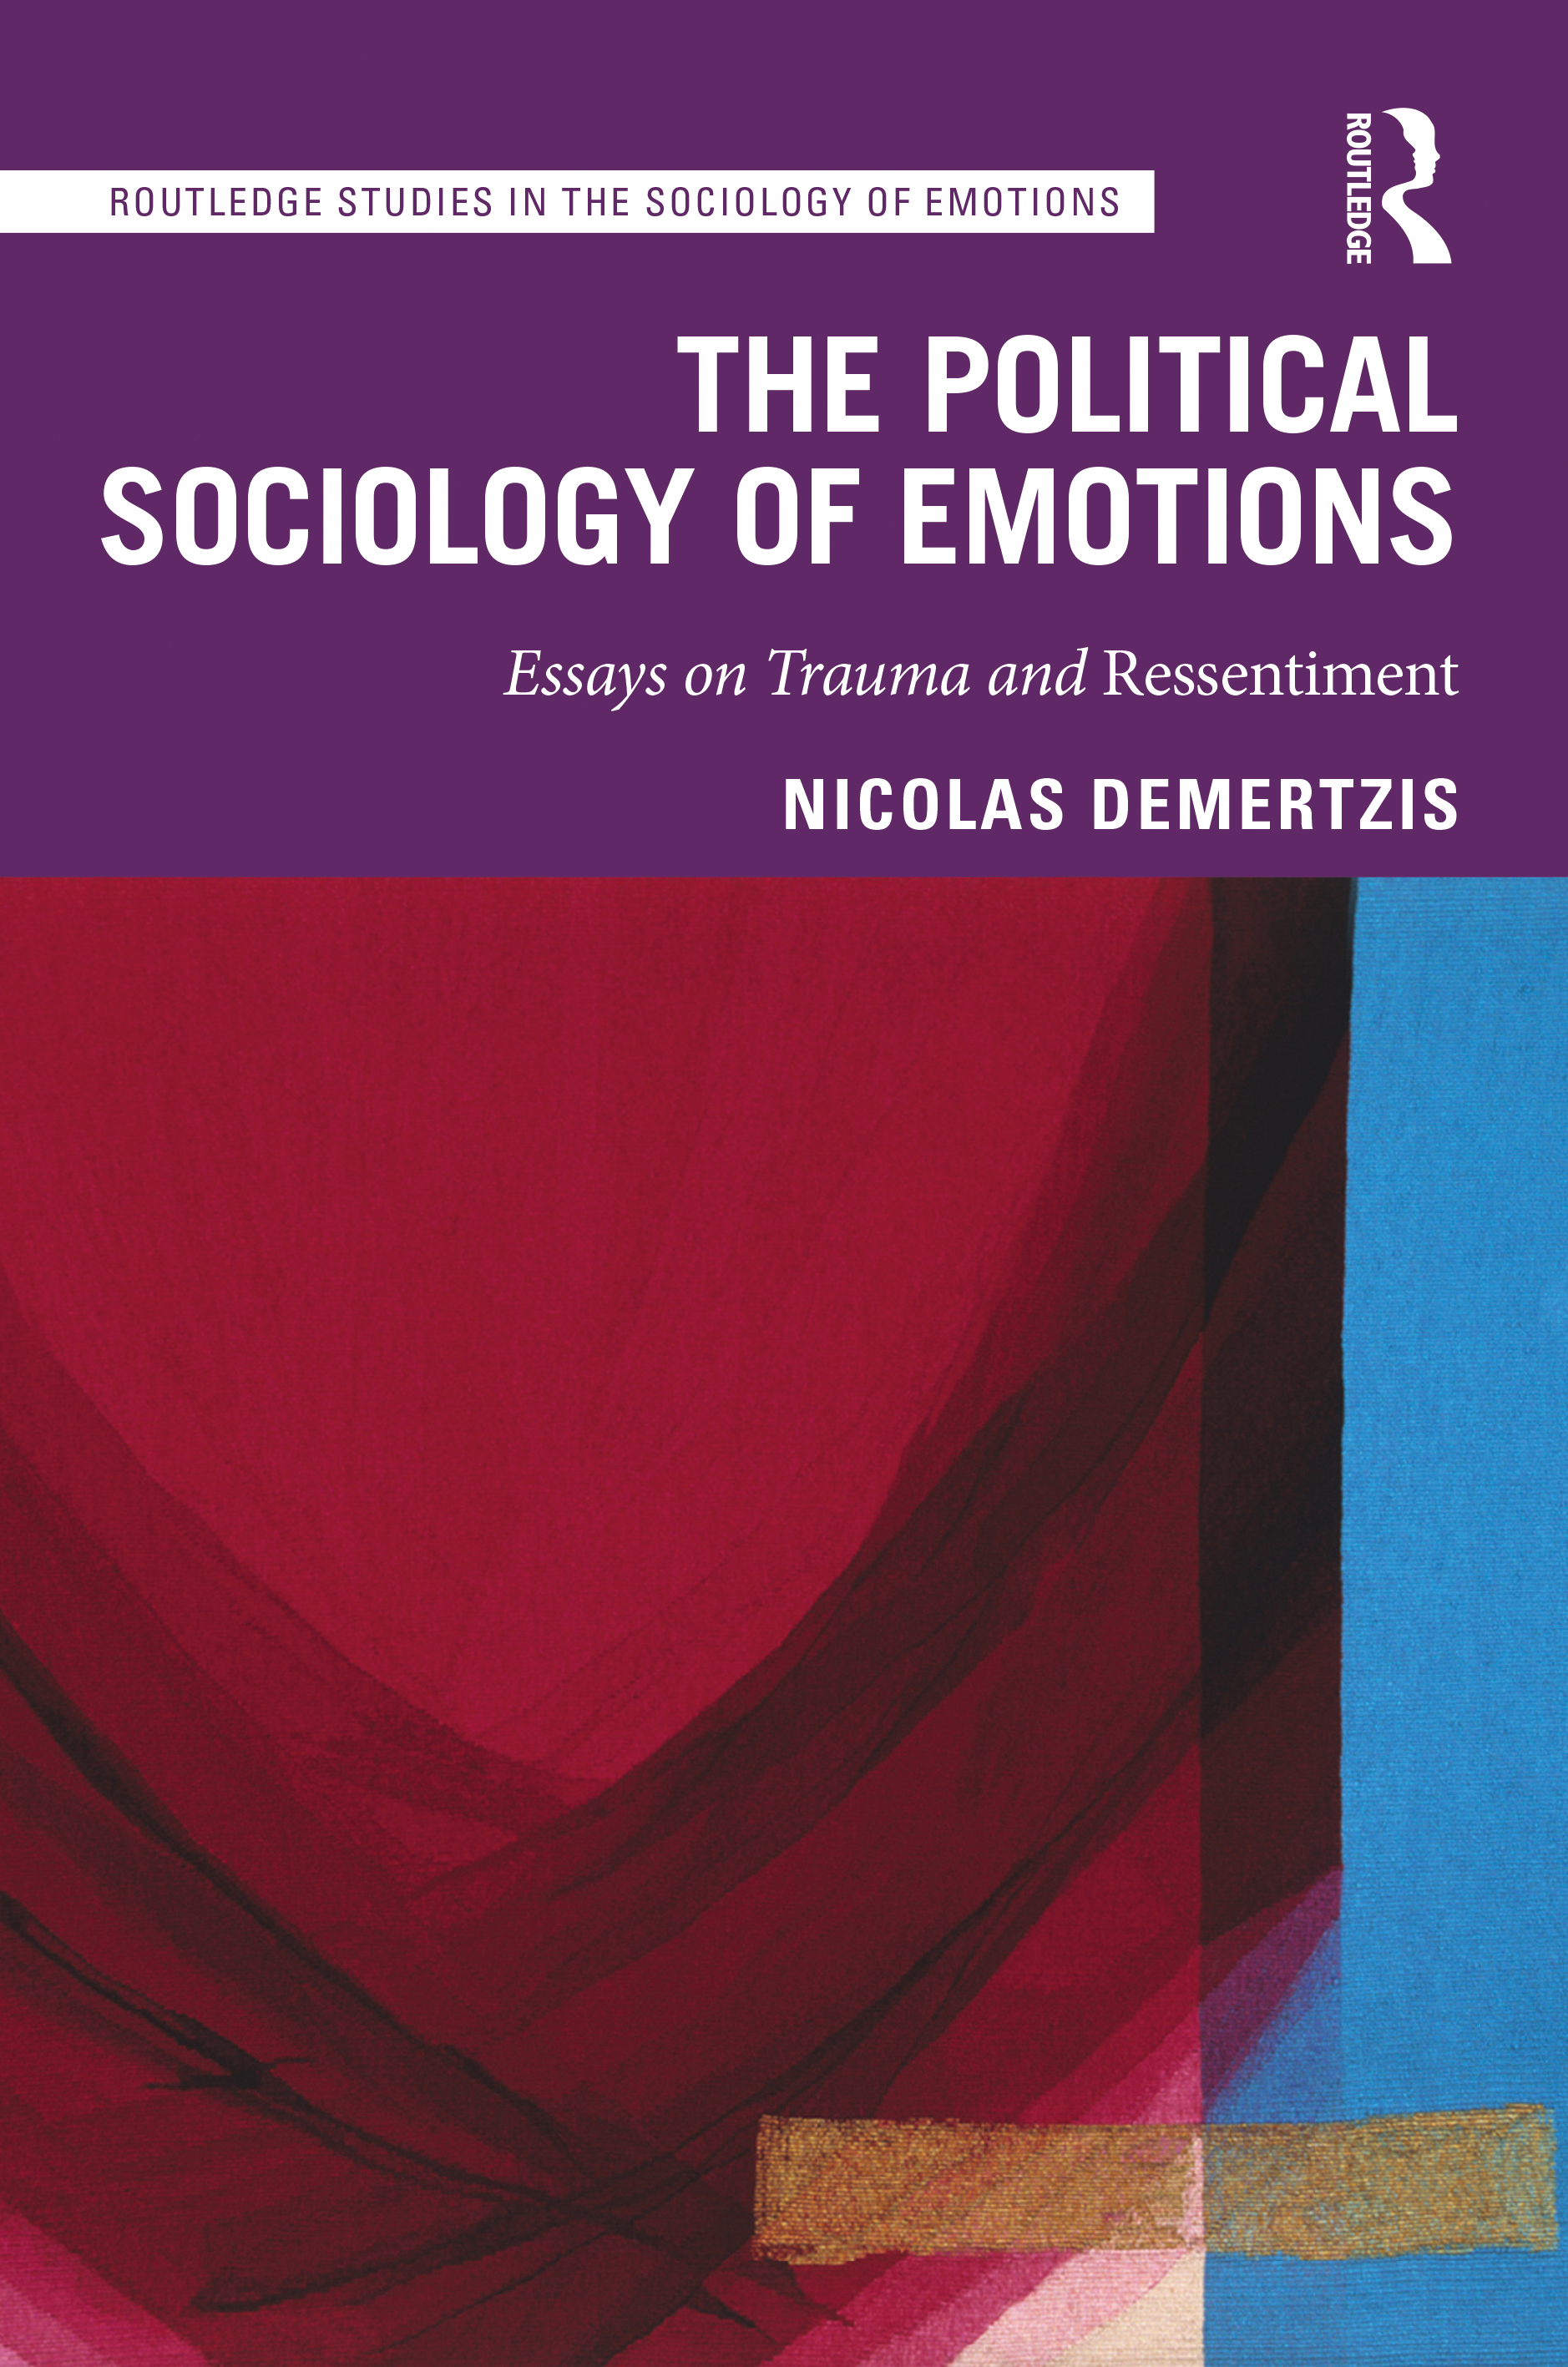 The Political Sociology of Emotions: Essays on Trauma and Ressentiment book cover